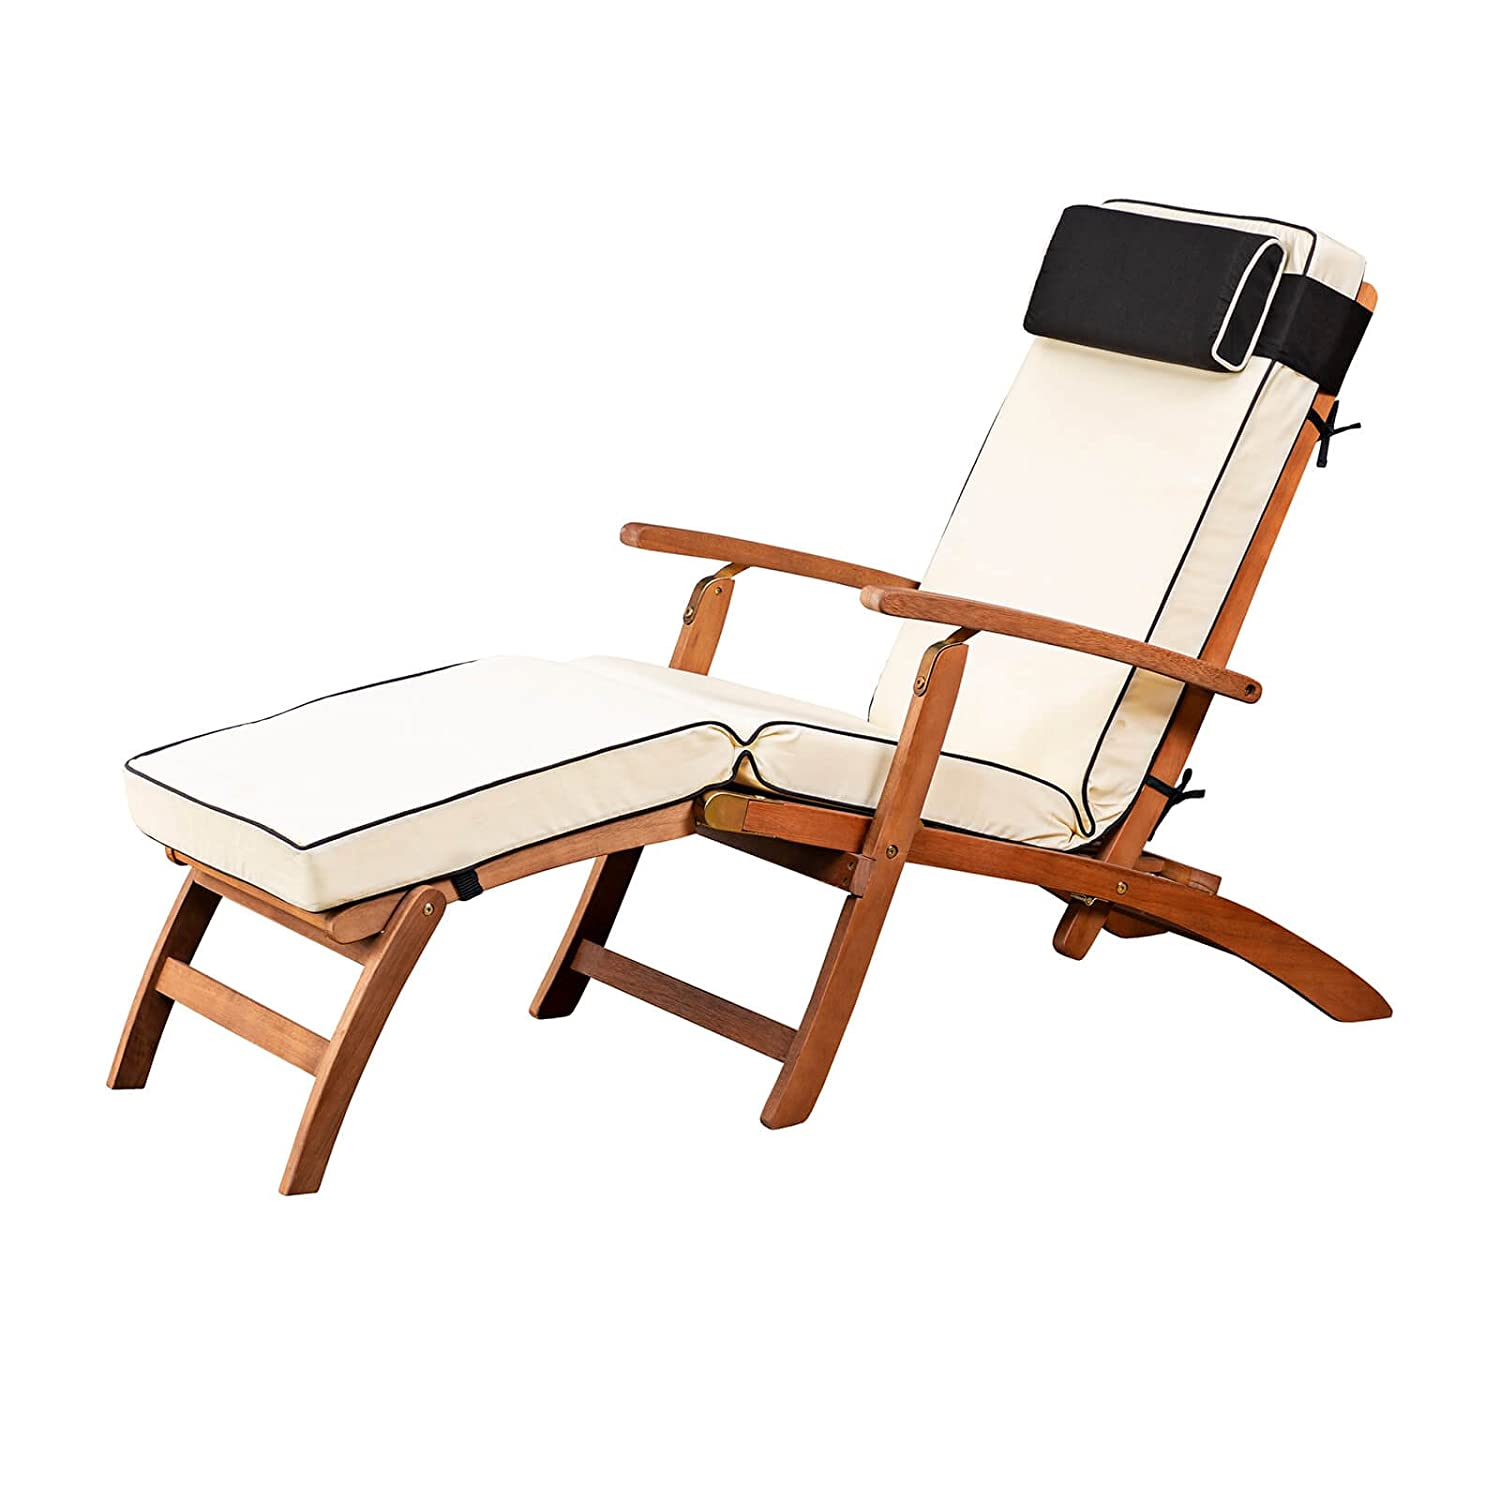 Alfresia Folding Wooden Steamer Deck Chair with Water-Resistant Luxury Cushions (Cream)